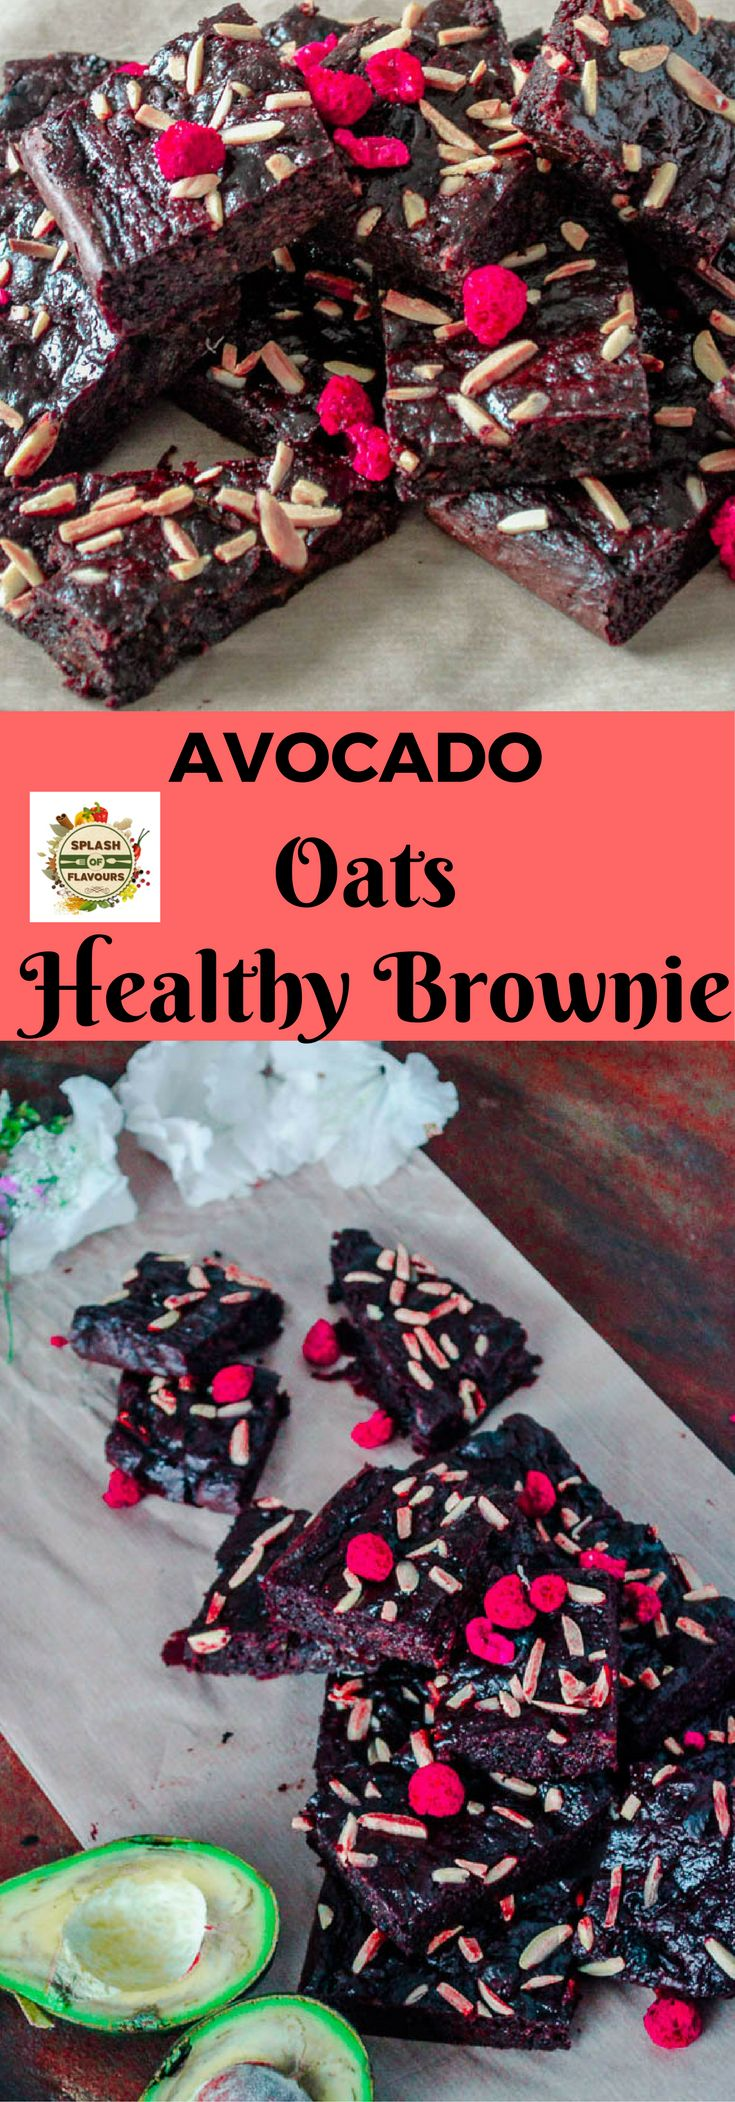 These delicious and super healthy brownies are made of avocado, oats and other few more healthy ingredients. No flour and butter is used.